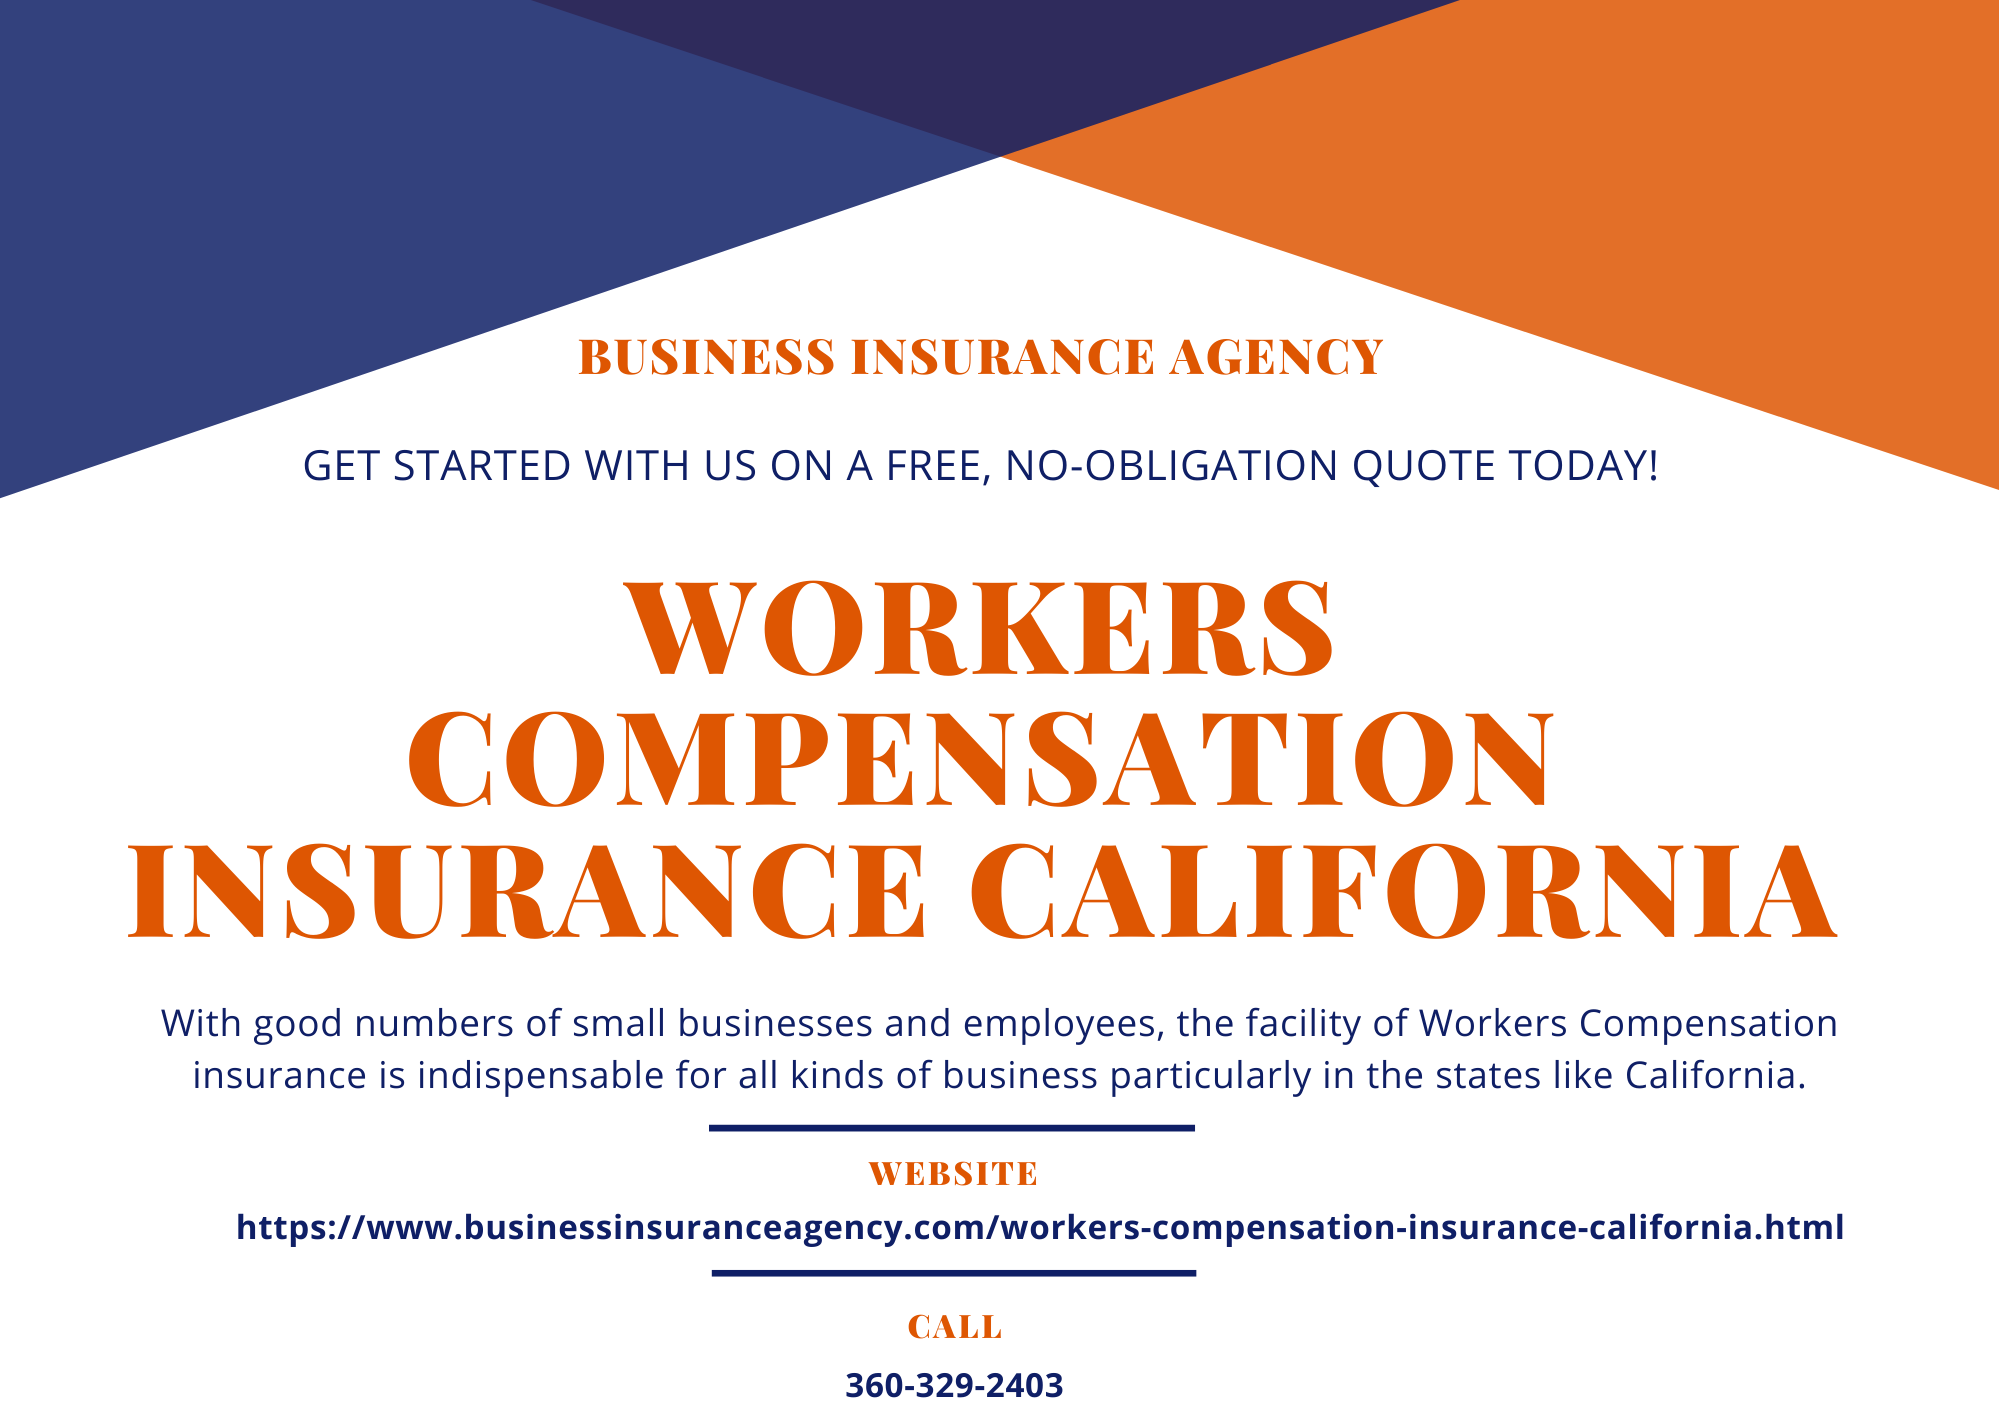 WORKERS COMPENSATION INSURANCE CALIFORNIA   Workers compensation insurance, Business insurance ...